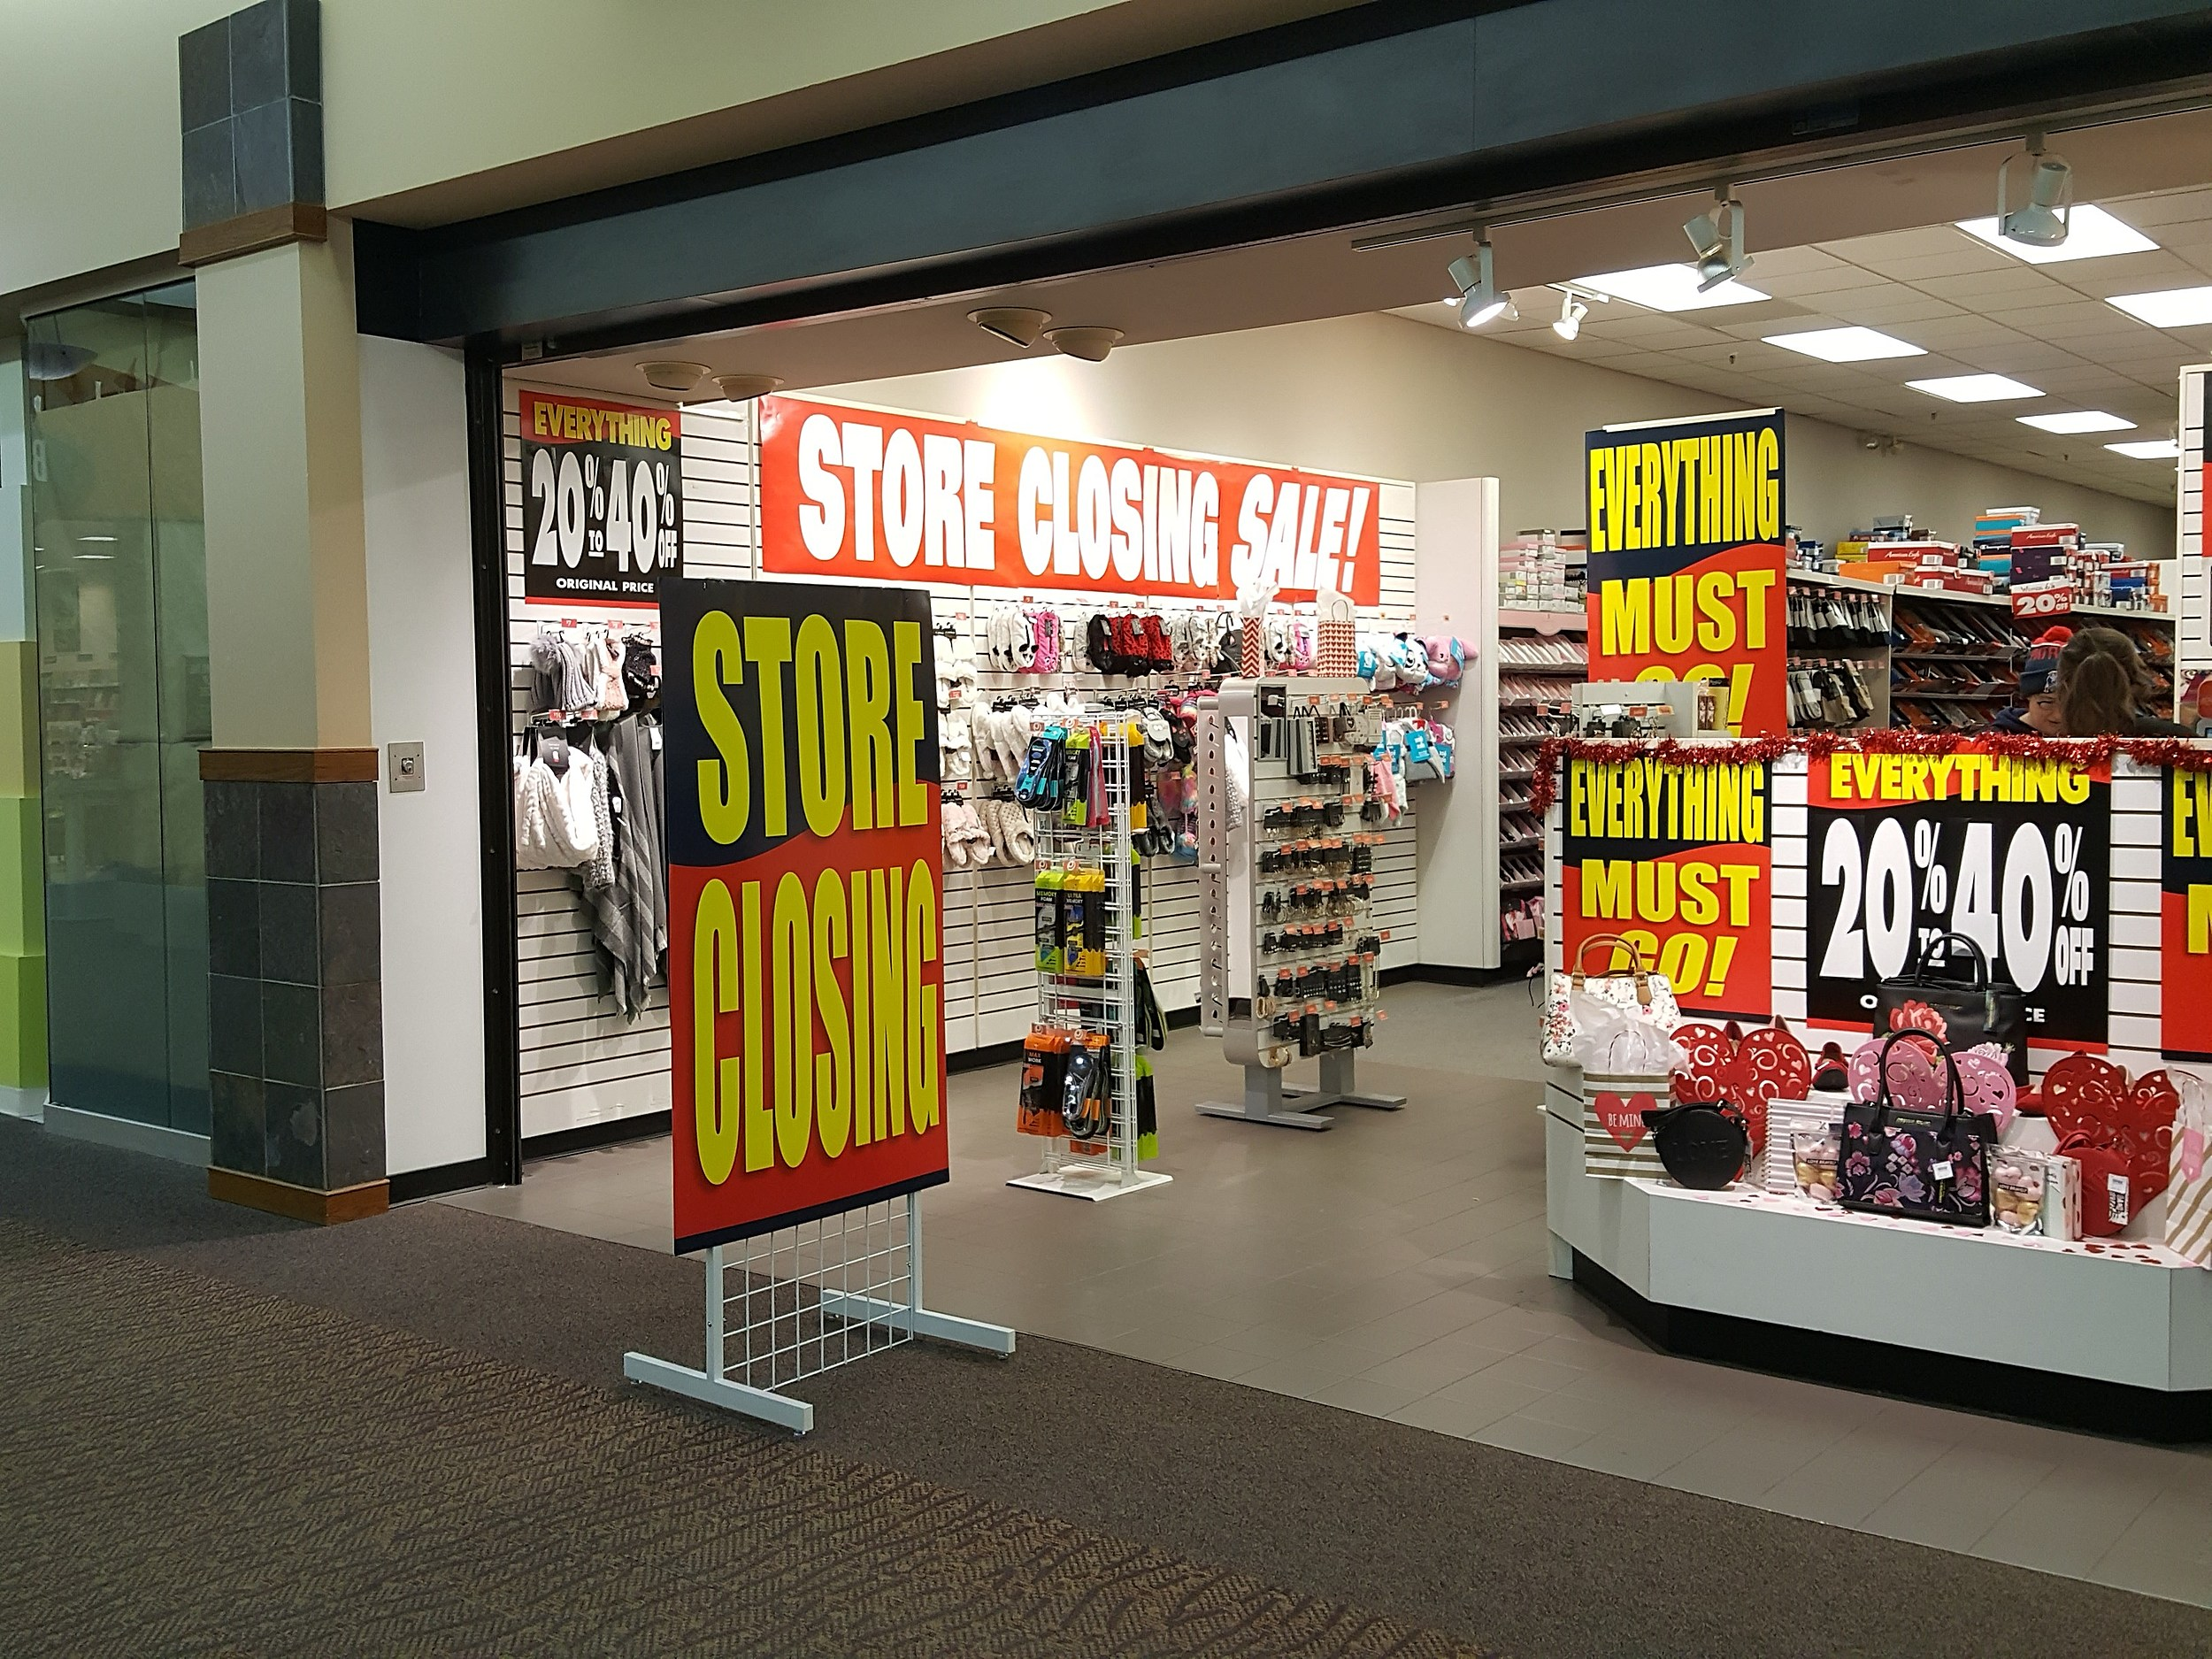 Payless Shoes Closing In Bozeman